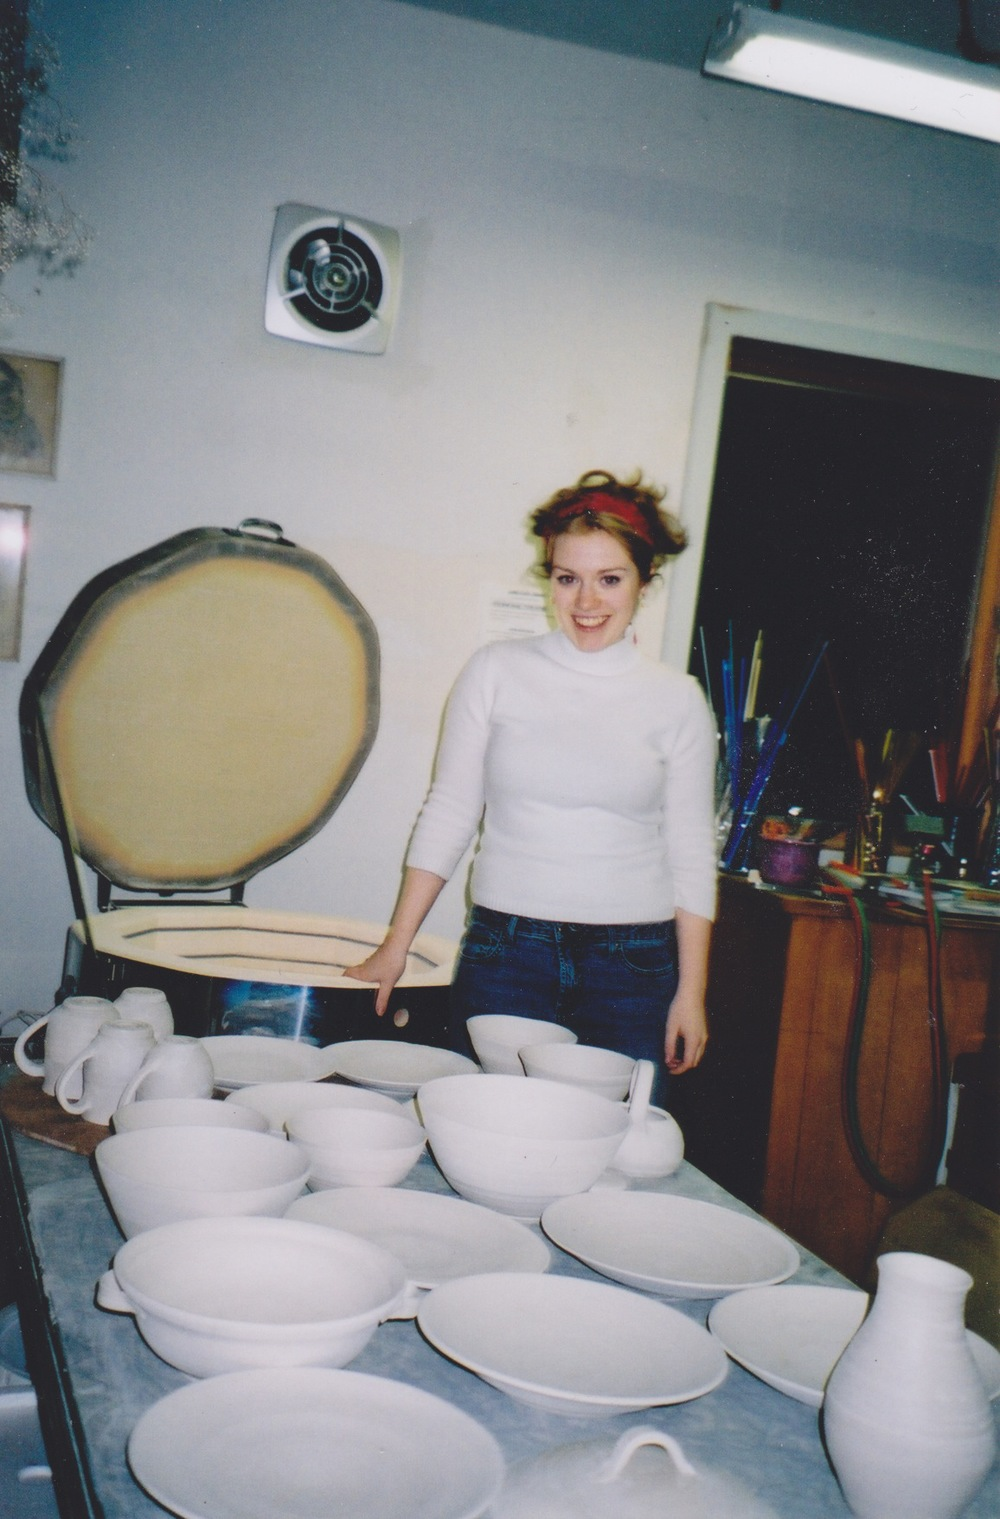 Another old picture, as my pieces came out of the kiln (pre-glaze).